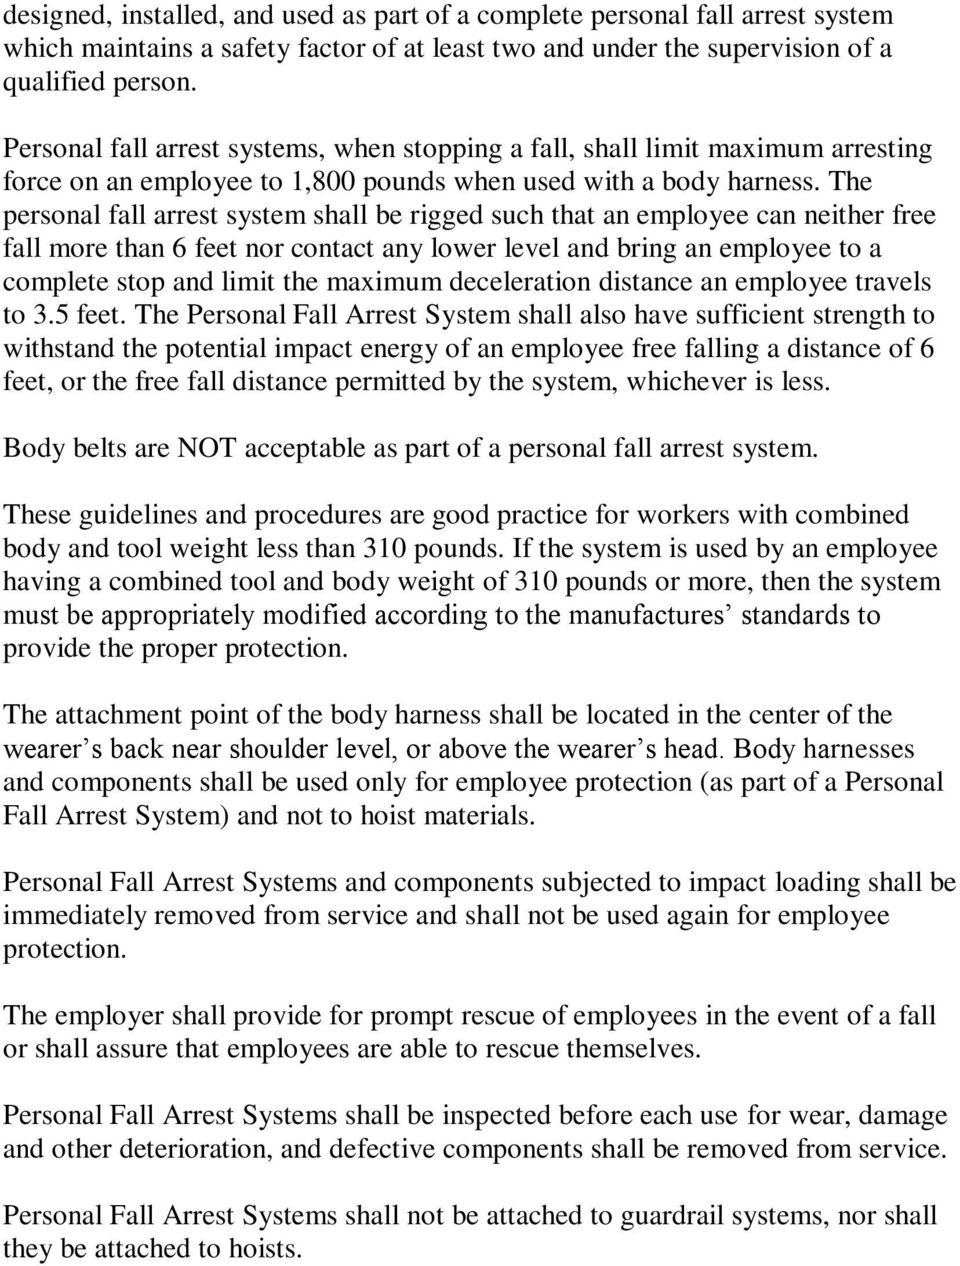 The personal fall arrest system shall be rigged such that an employee can neither free fall more than 6 feet nor contact any lower level and bring an employee to a complete stop and limit the maximum